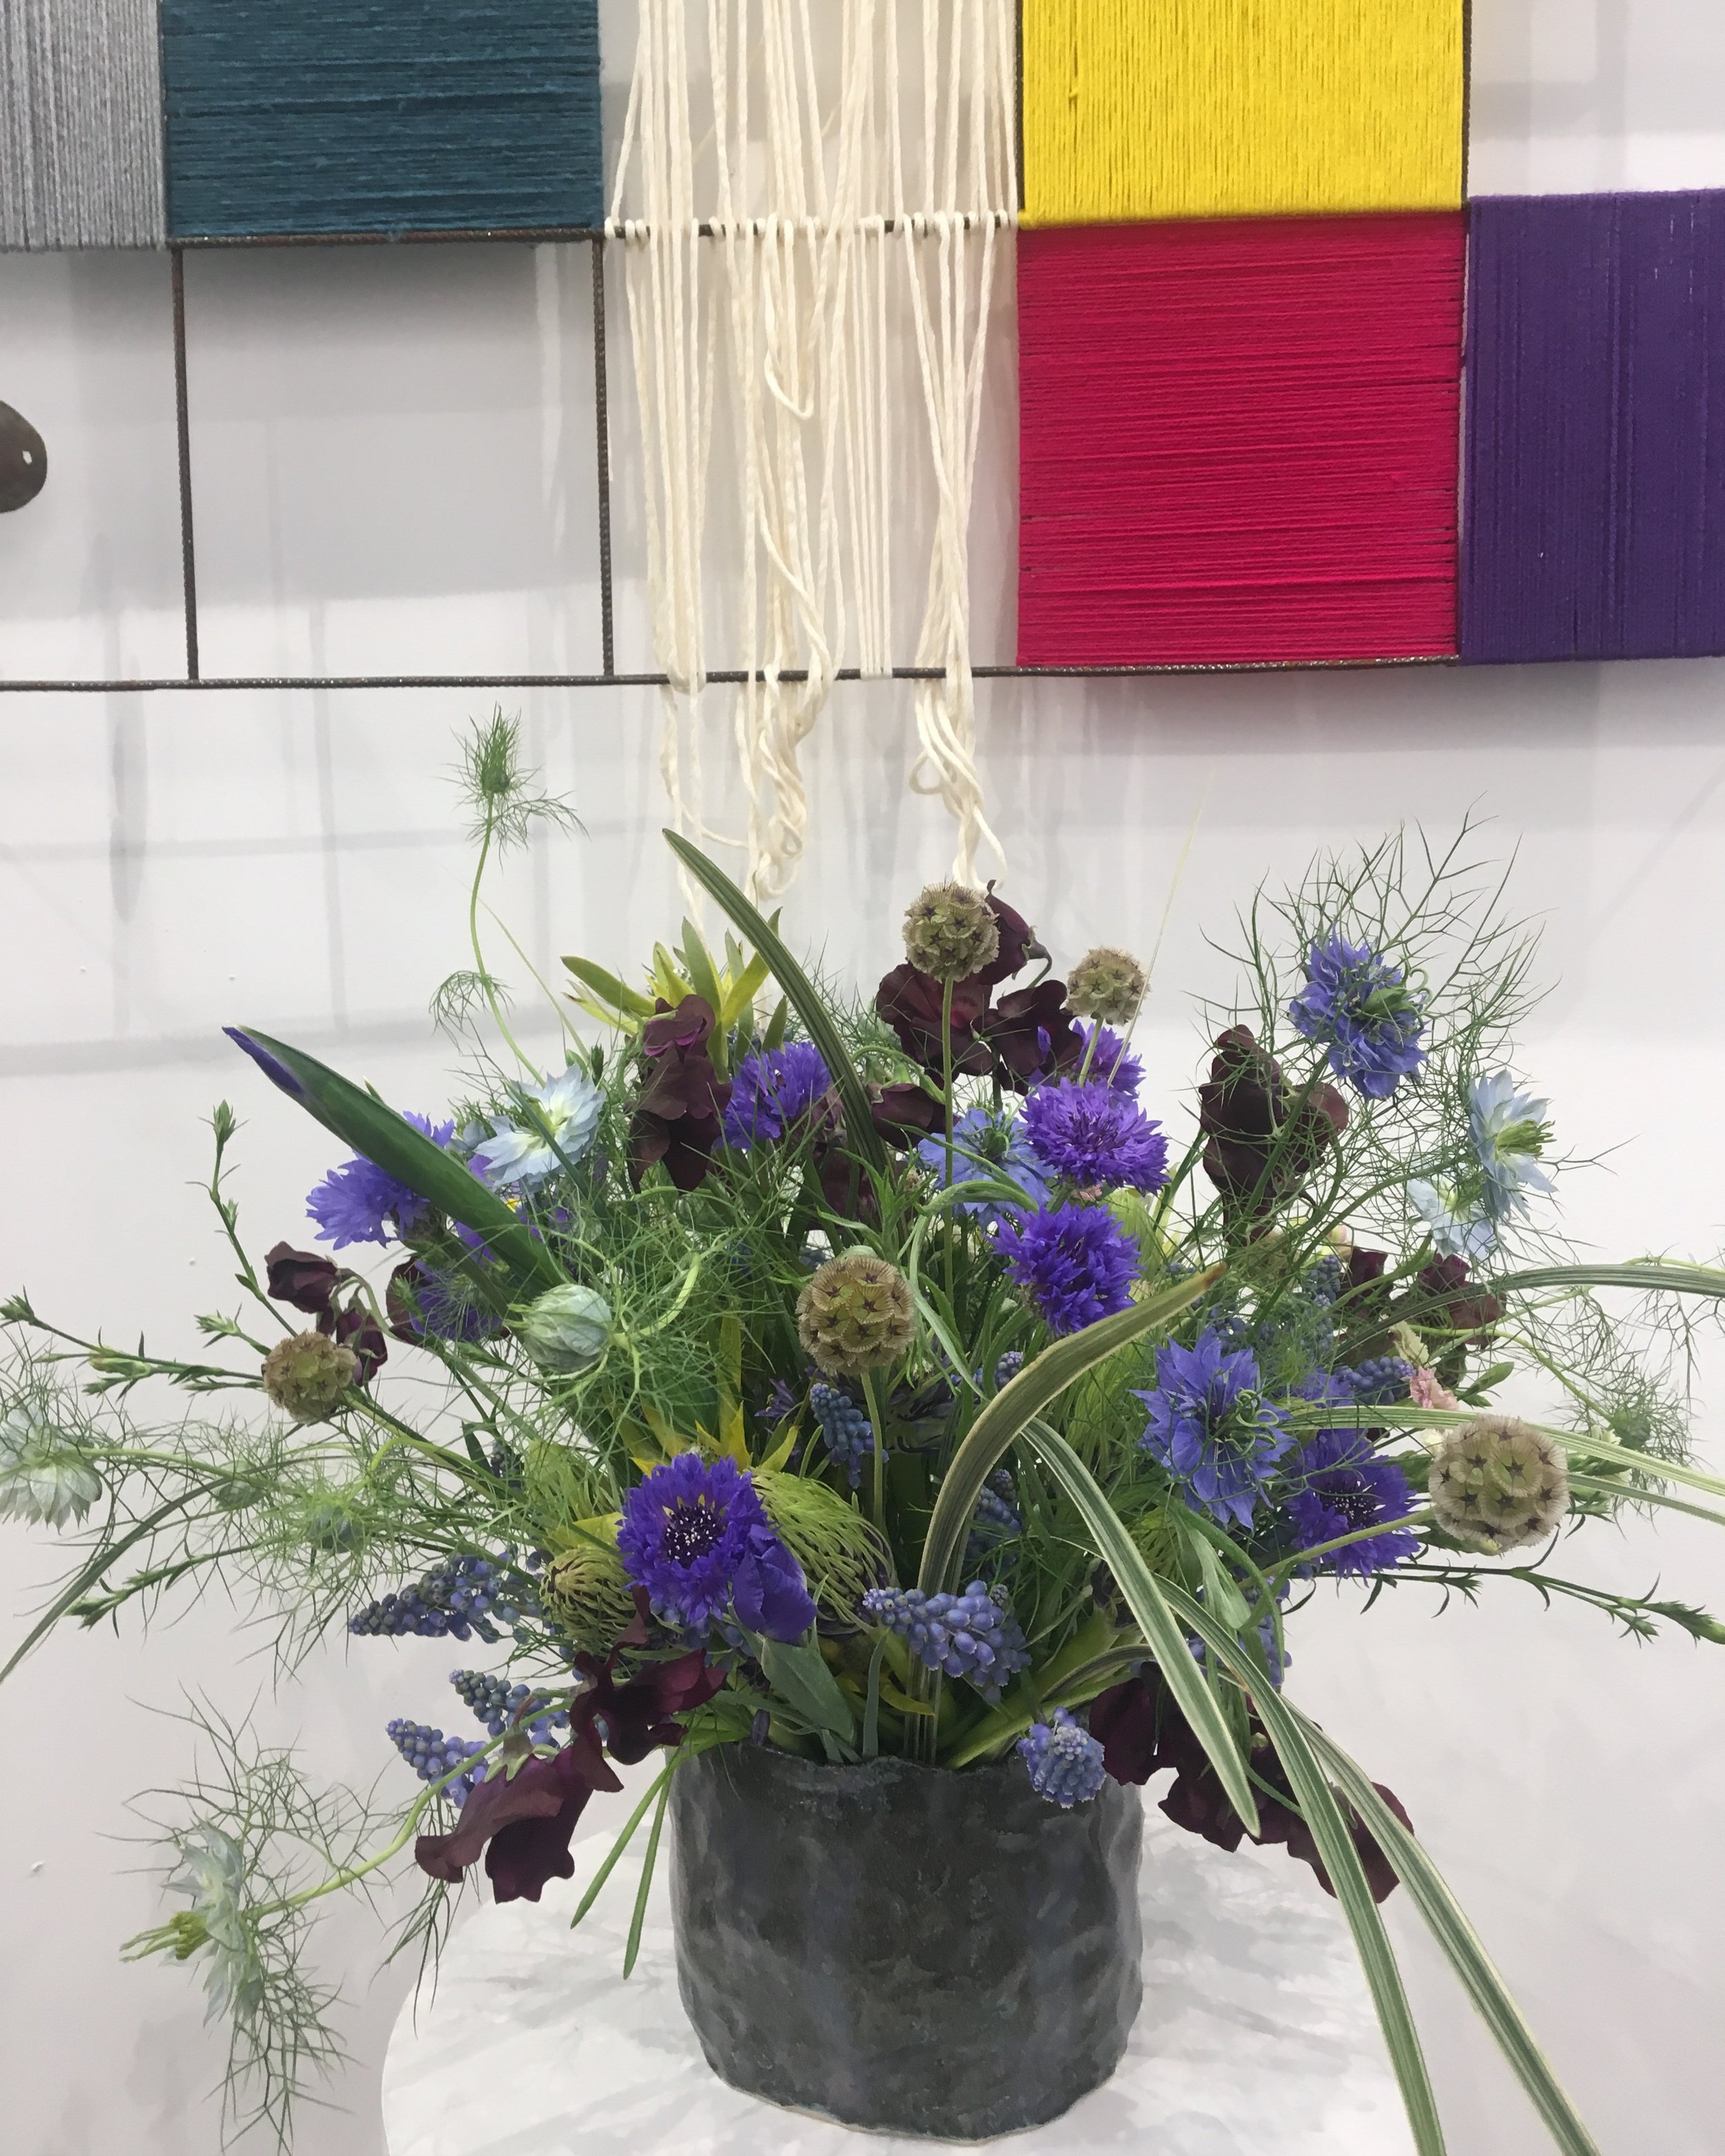 Bouquet by Horty Poetry in front of a work of Michele Ciacciofera, Galerie Michel Rein, ArtBrussels, April 2019, ceramic vase by Formes Libres - photo Hortense T.